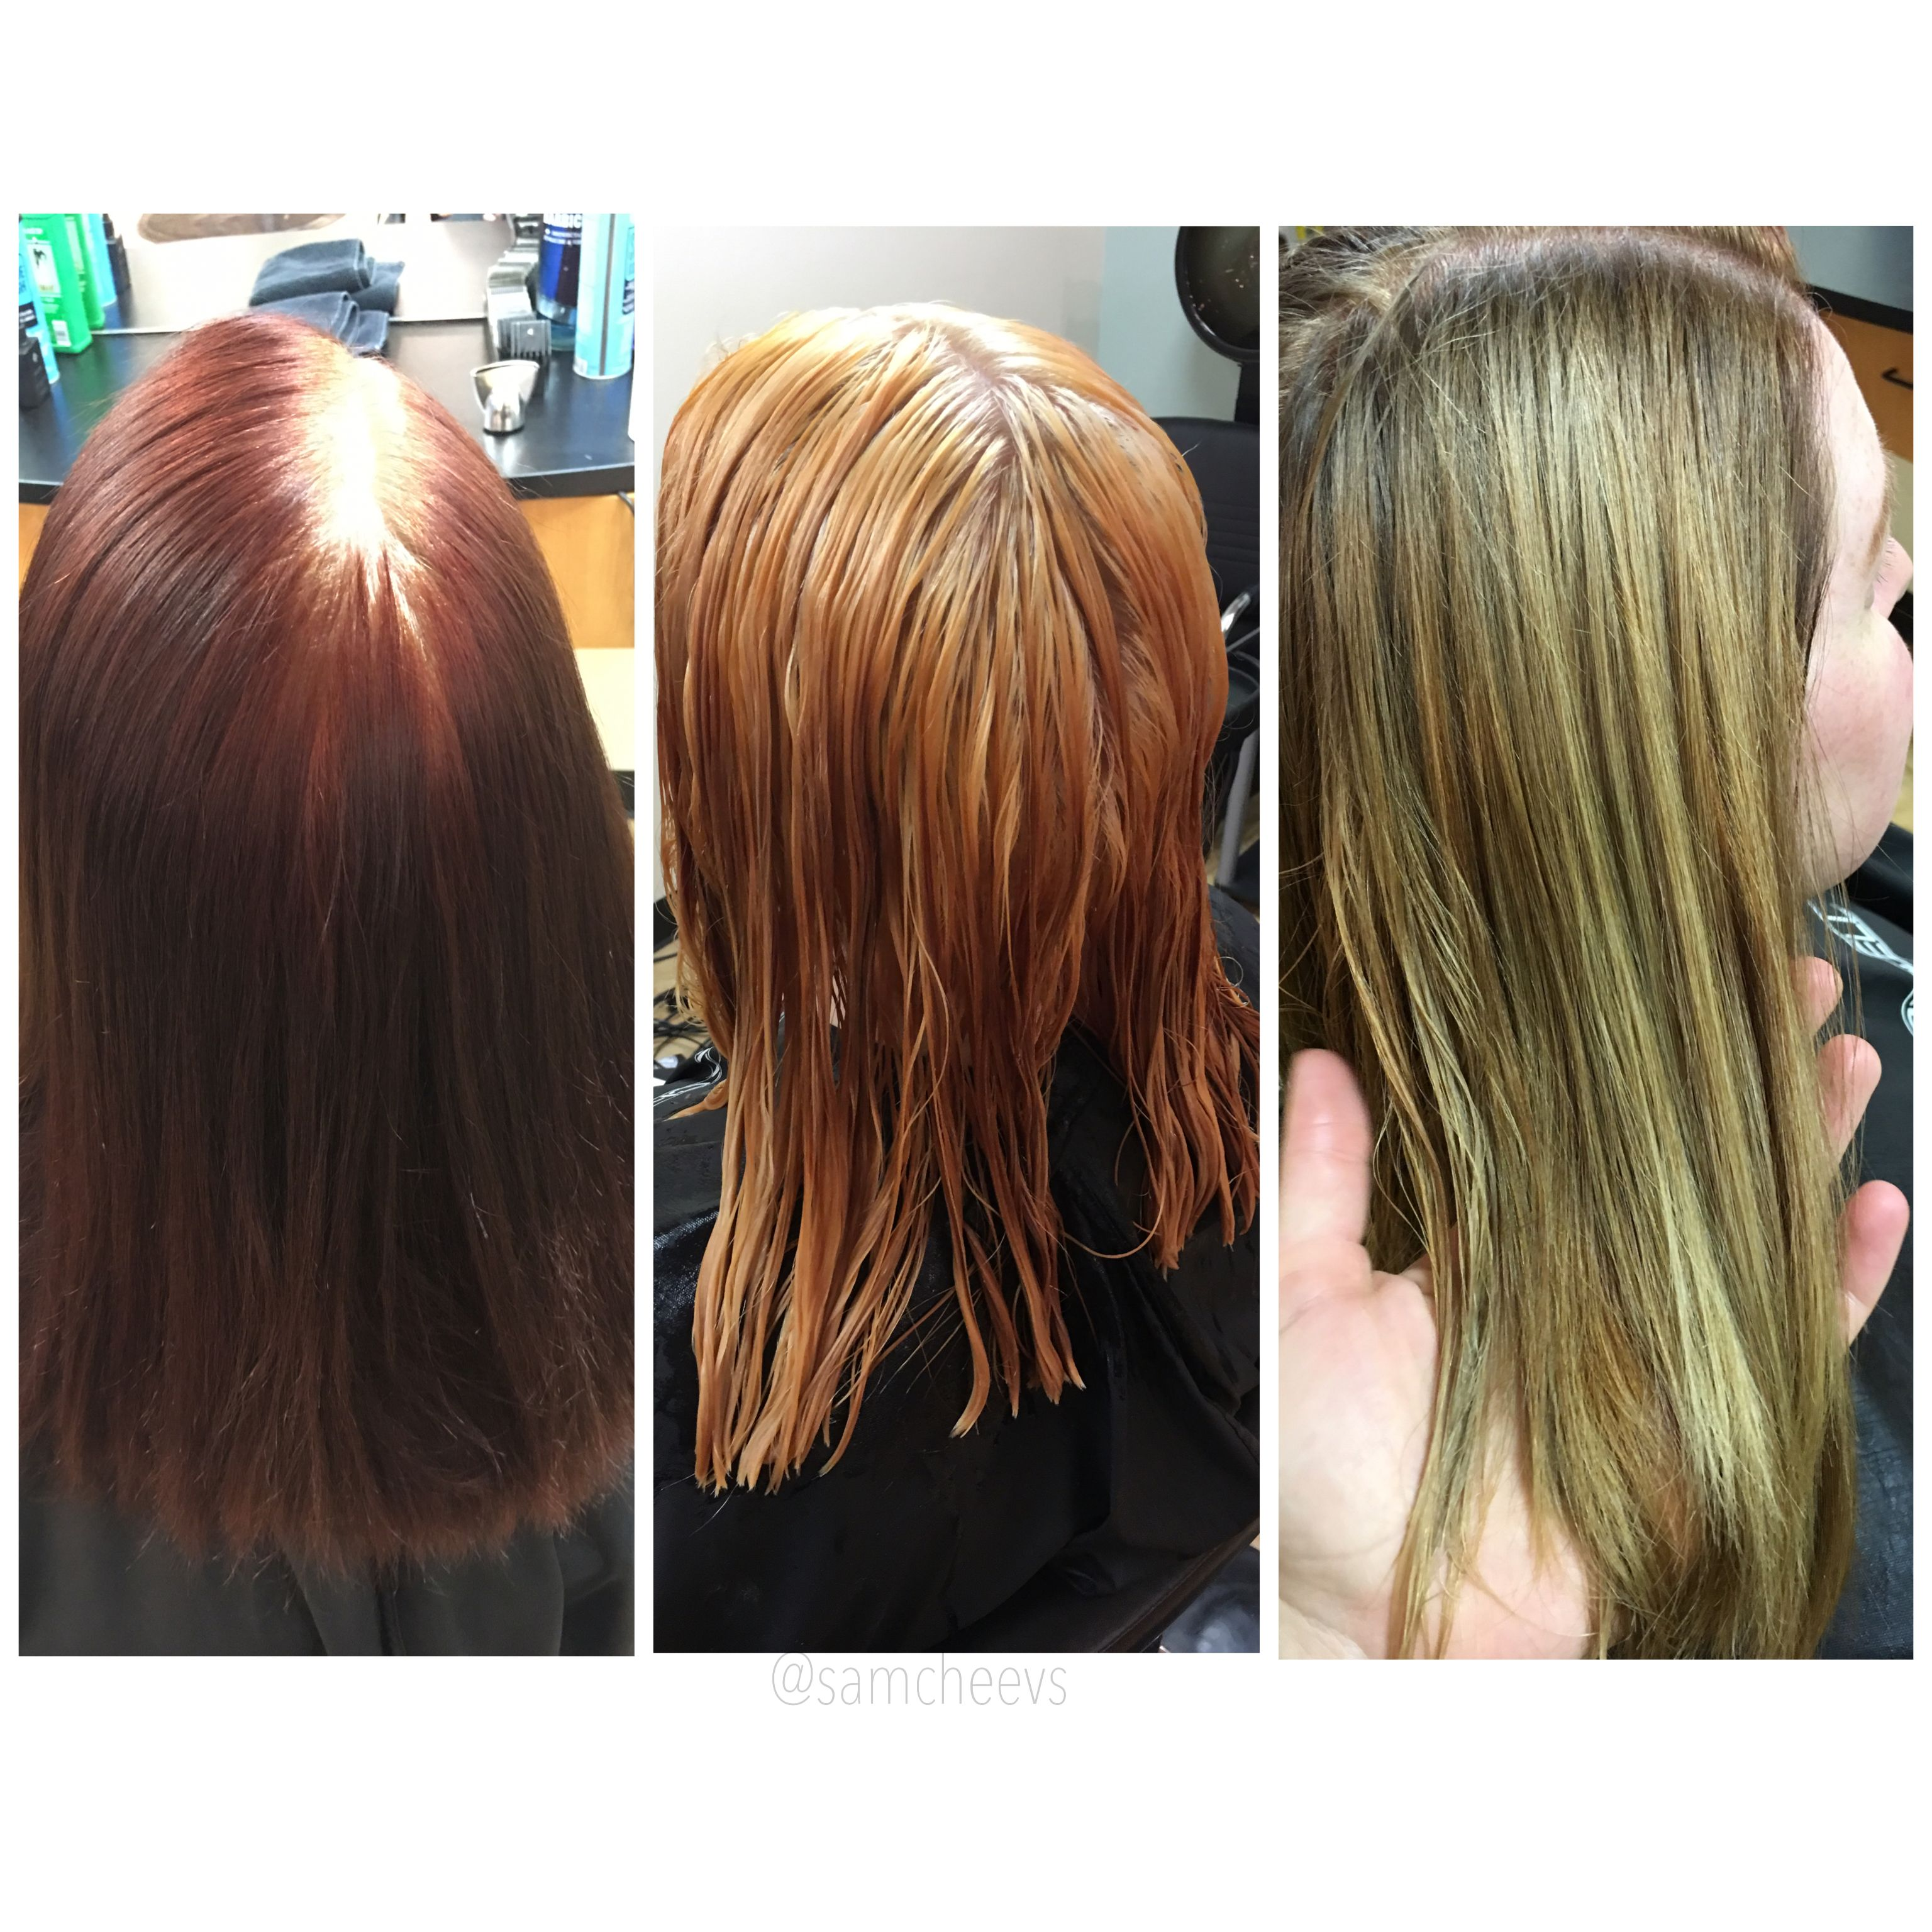 6 Hour Color Correction From Box Dye To Natural Blonde Before